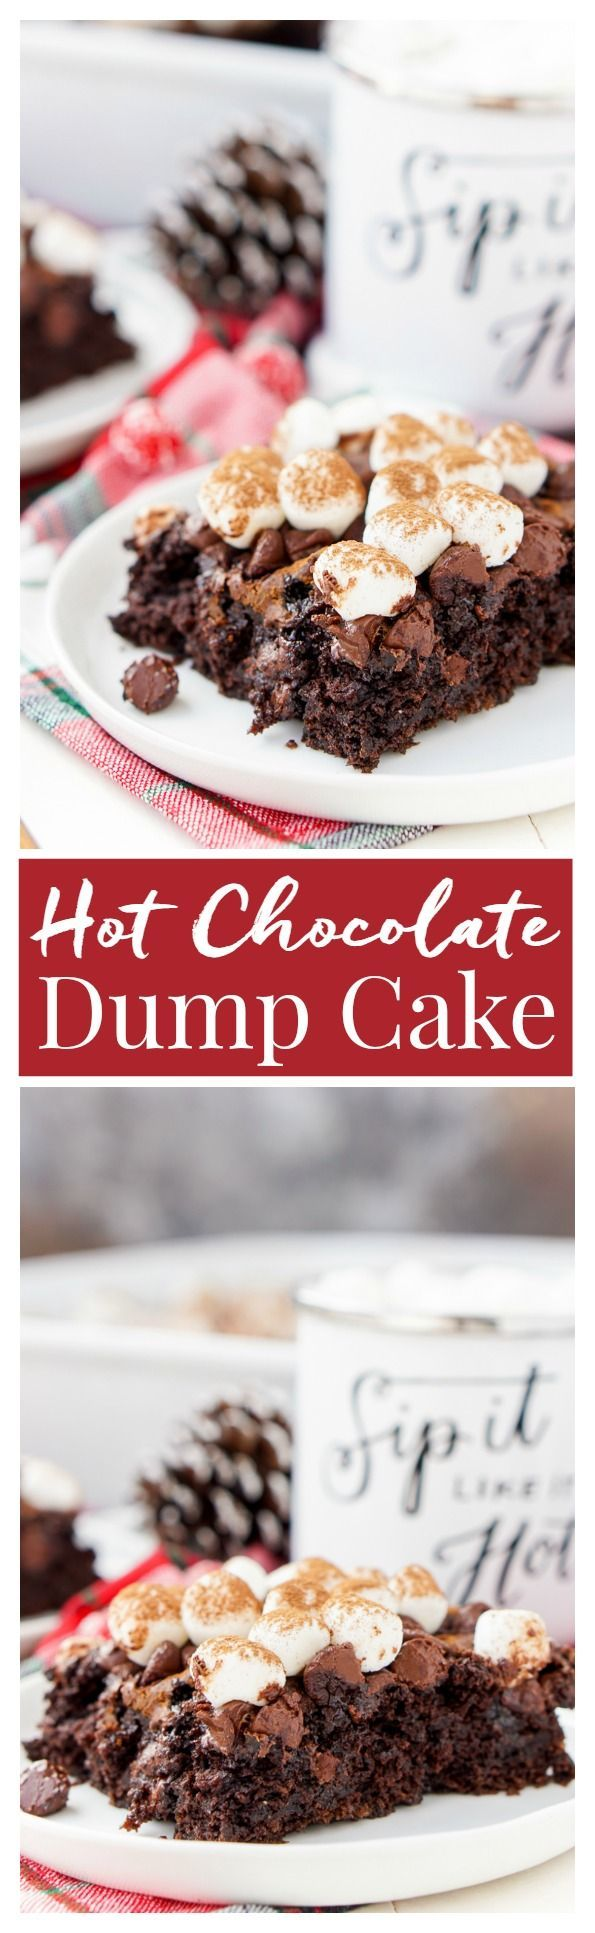 With this Hot Chocolate Dump Cake, there's no need to decide between hot cocoa and chocolate cake – you can have both! An easy holiday dessert made with just six ingredients! /tablespoon/ #ad #tablespoon